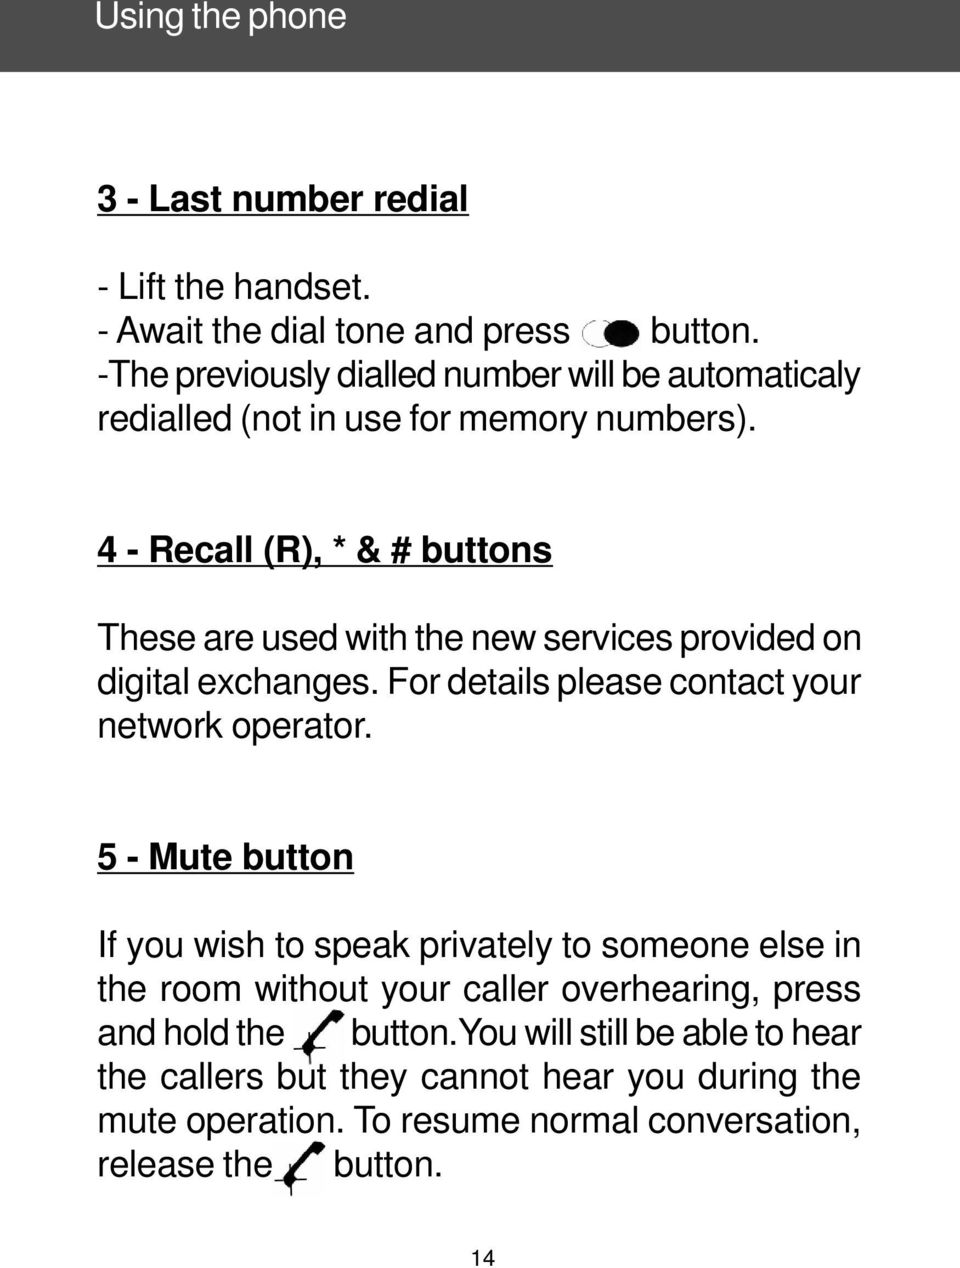 4 - Recall (R), * & # buttons These are used with the new services provided on digital exchanges. For details please contact your network operator.